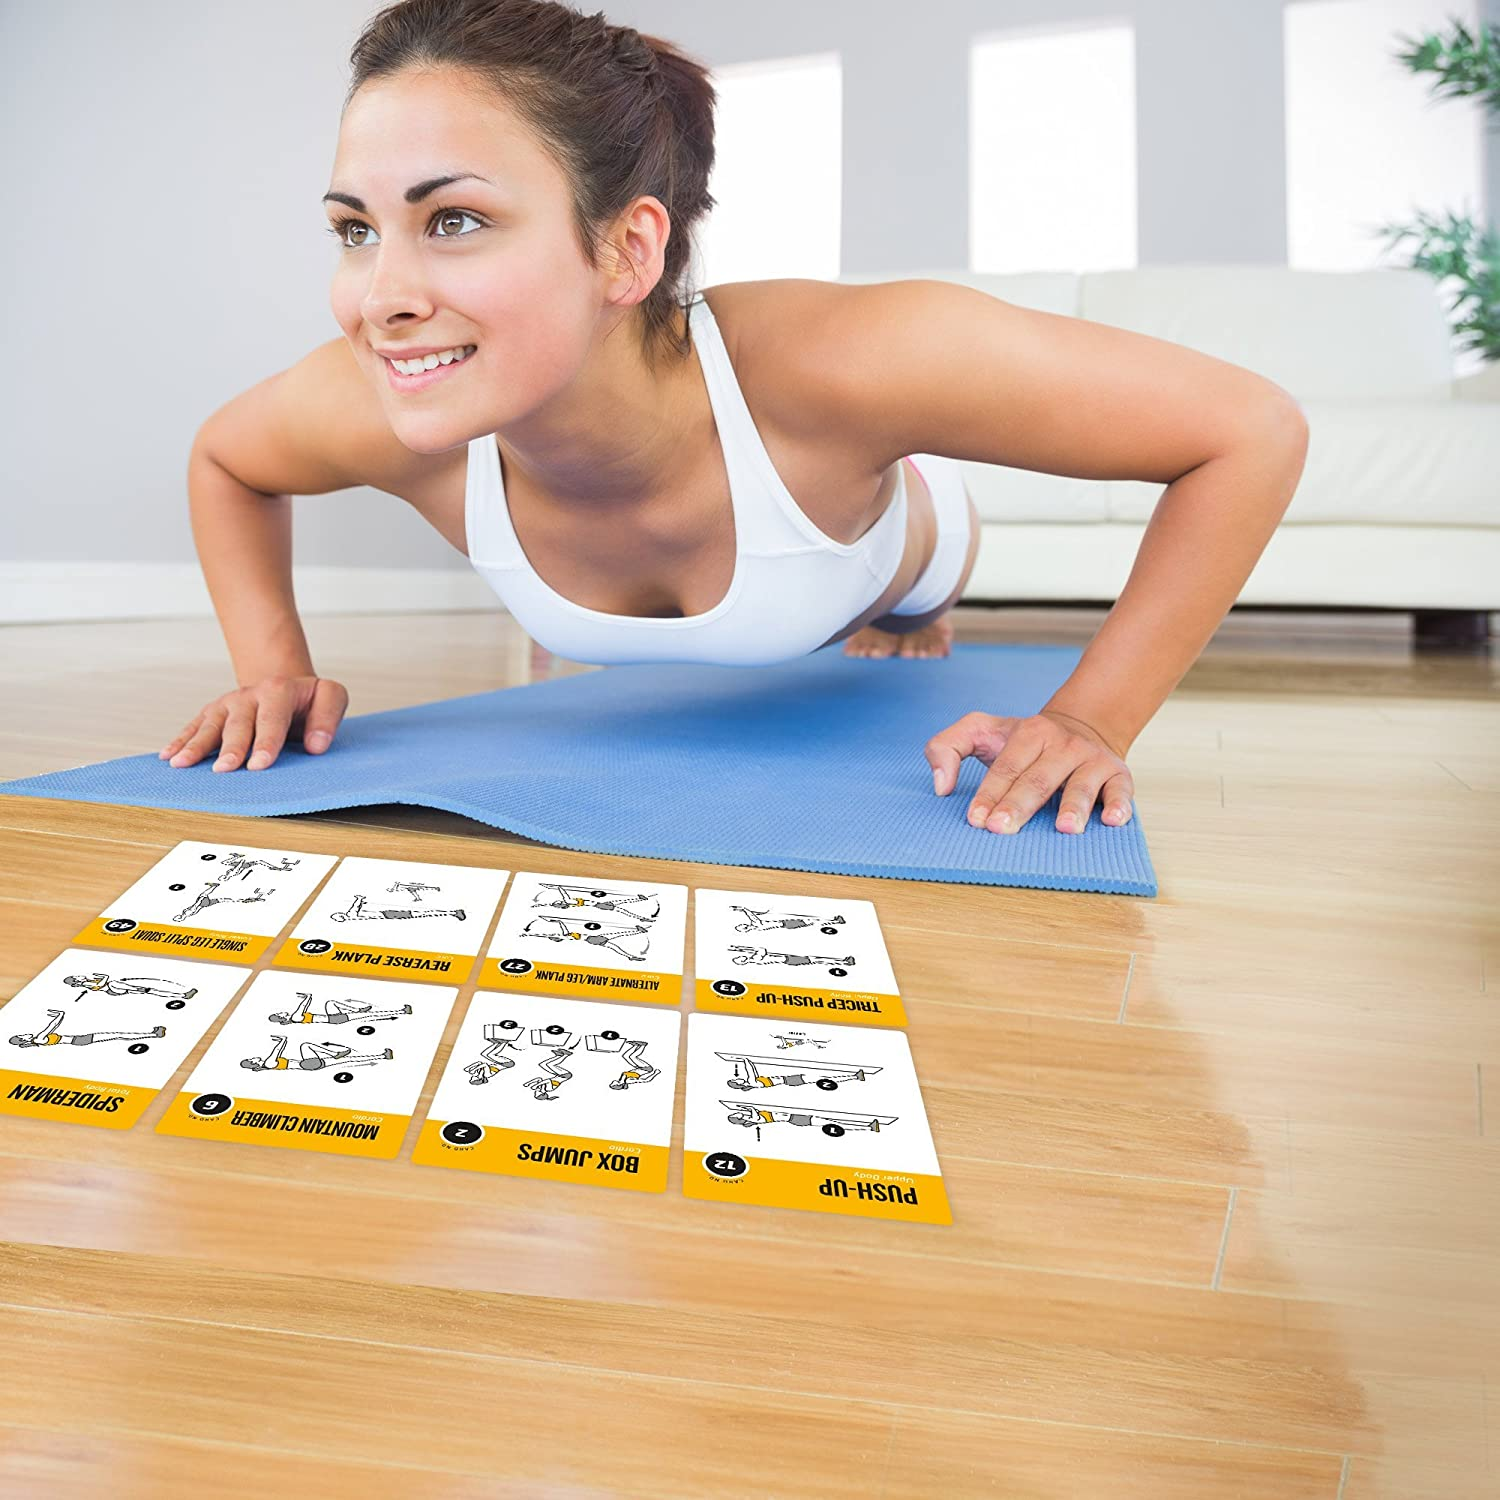 Home Gym Workout Personal Trainer Fitness Program Guide Tones Core Ab Legs Glutes Chest Biceps Total Upper Body Workouts Calisthenics Training Routine NewMe Fitness Exercise Cards BODYWEIGHT